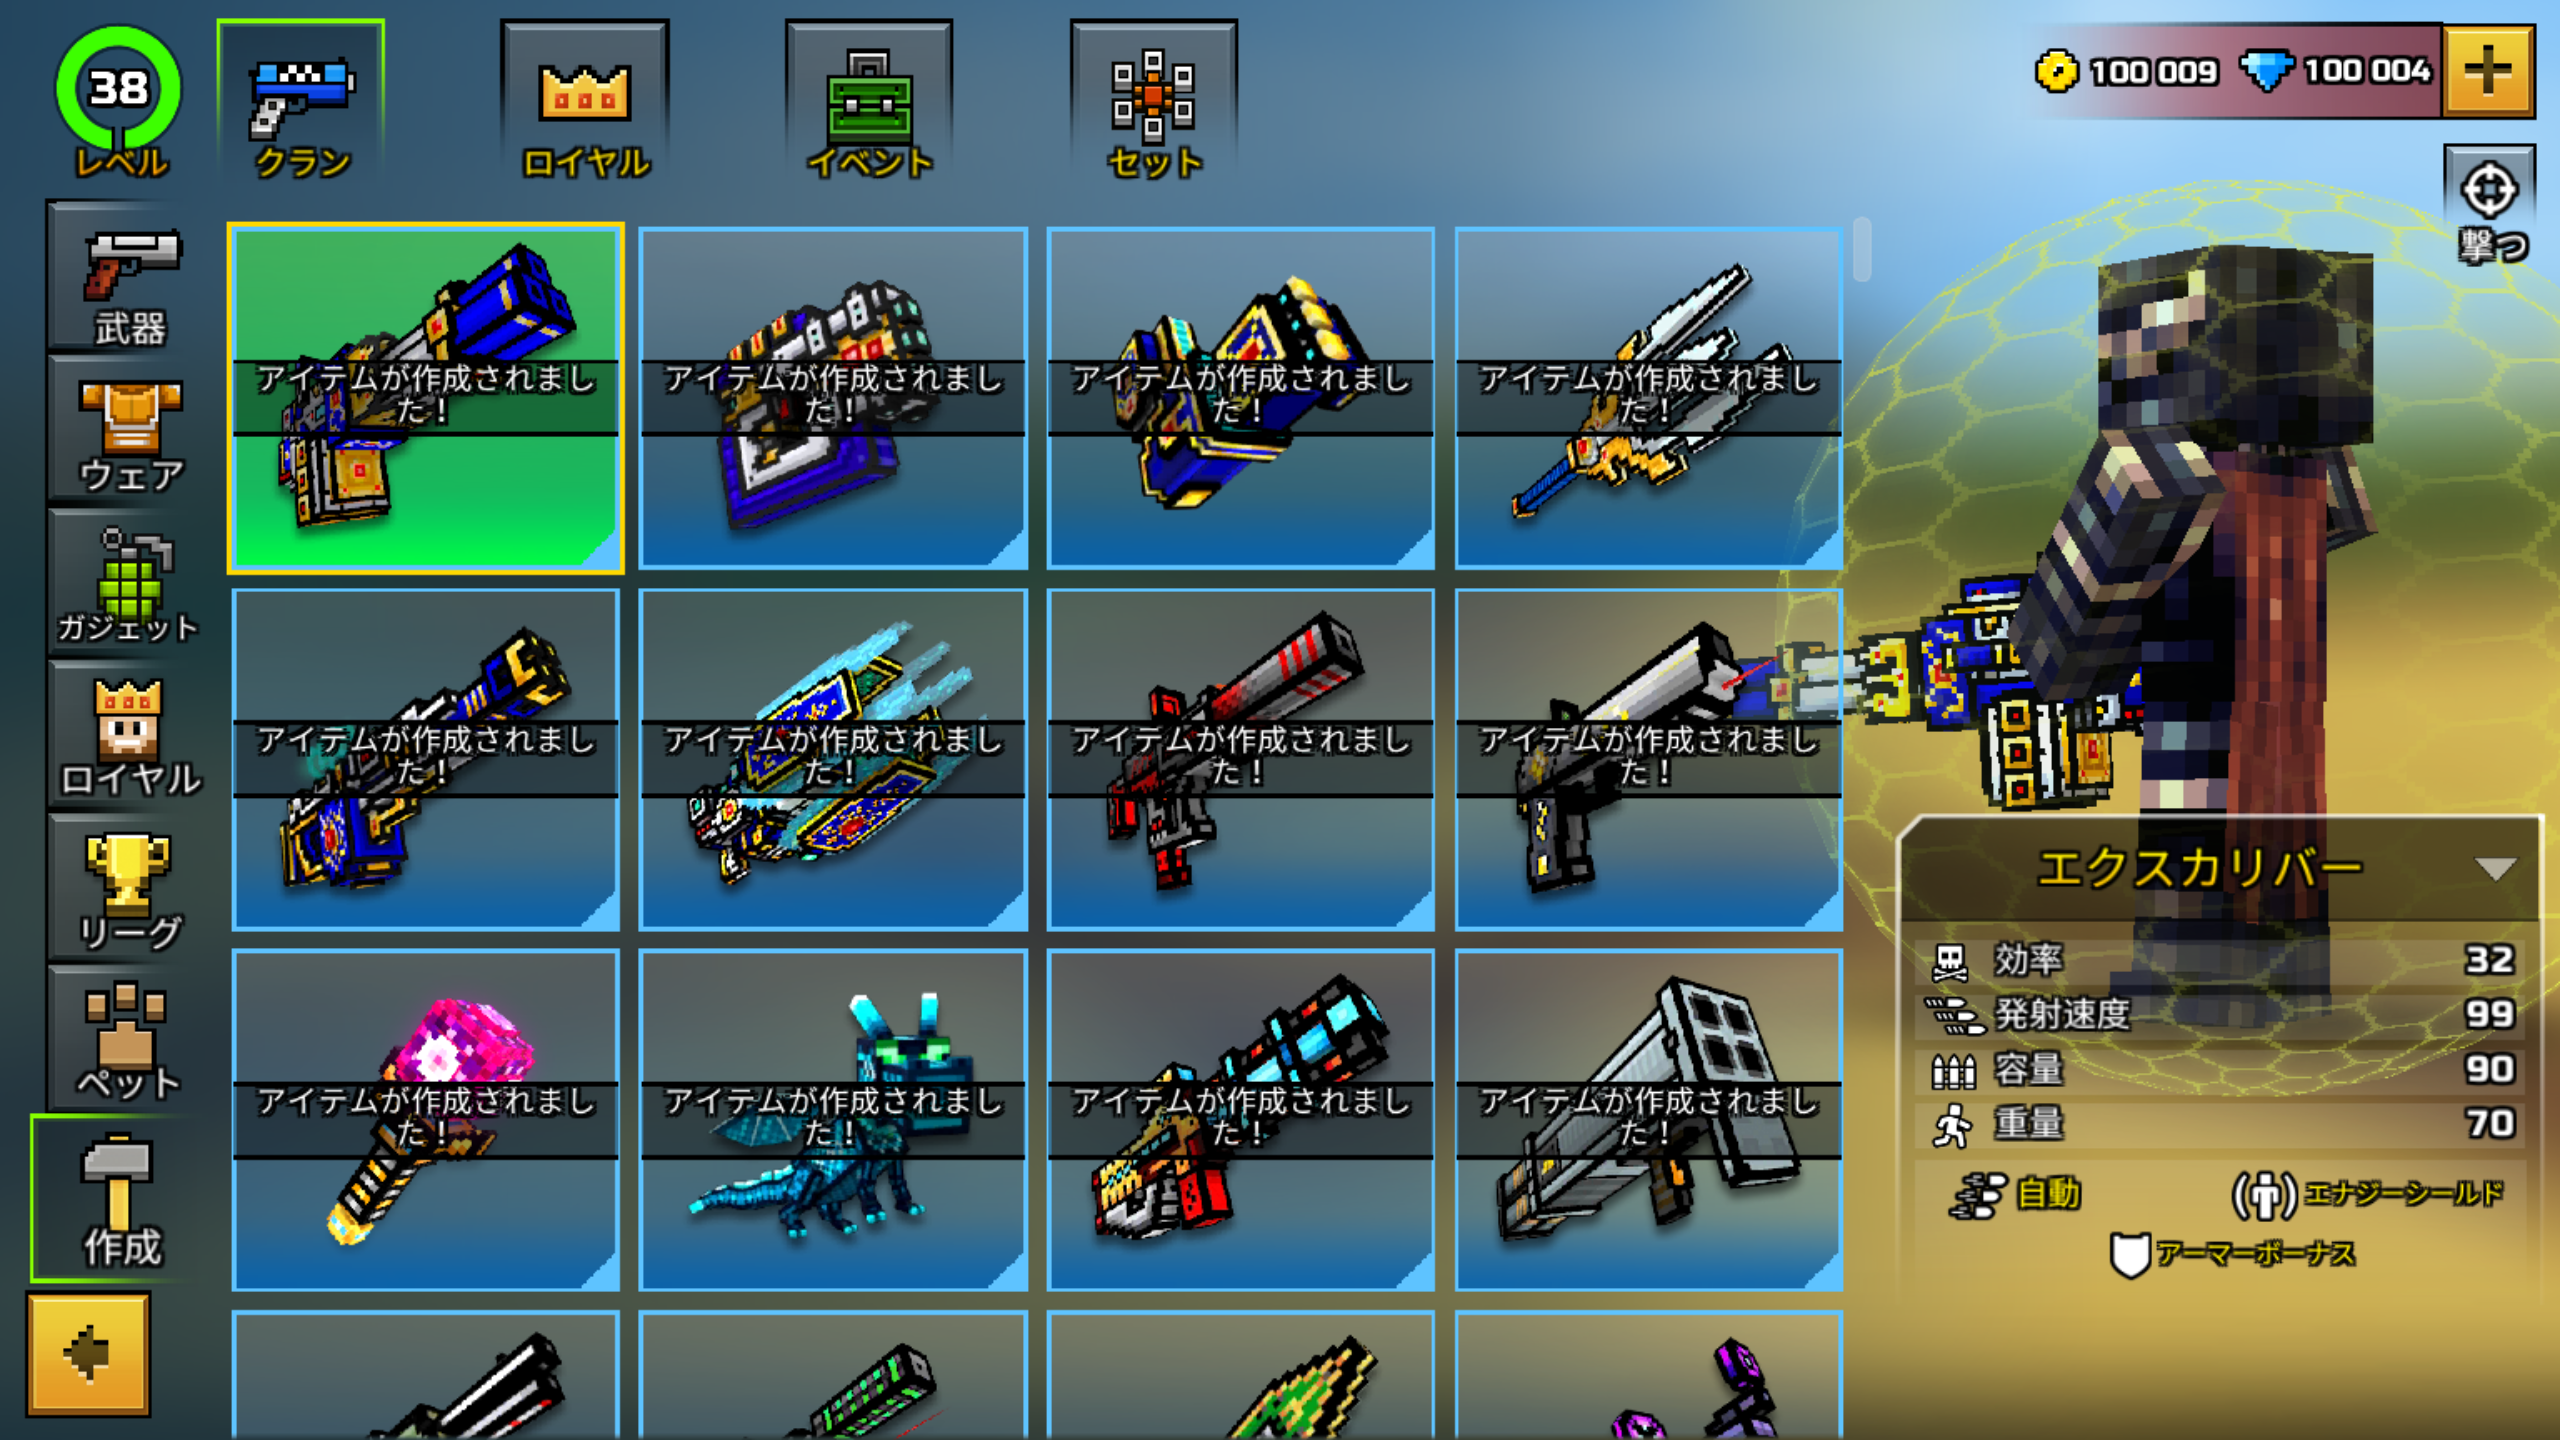 Pixel Gun 3D (Minecraft style) 16.0.1のAndroid - ダ …